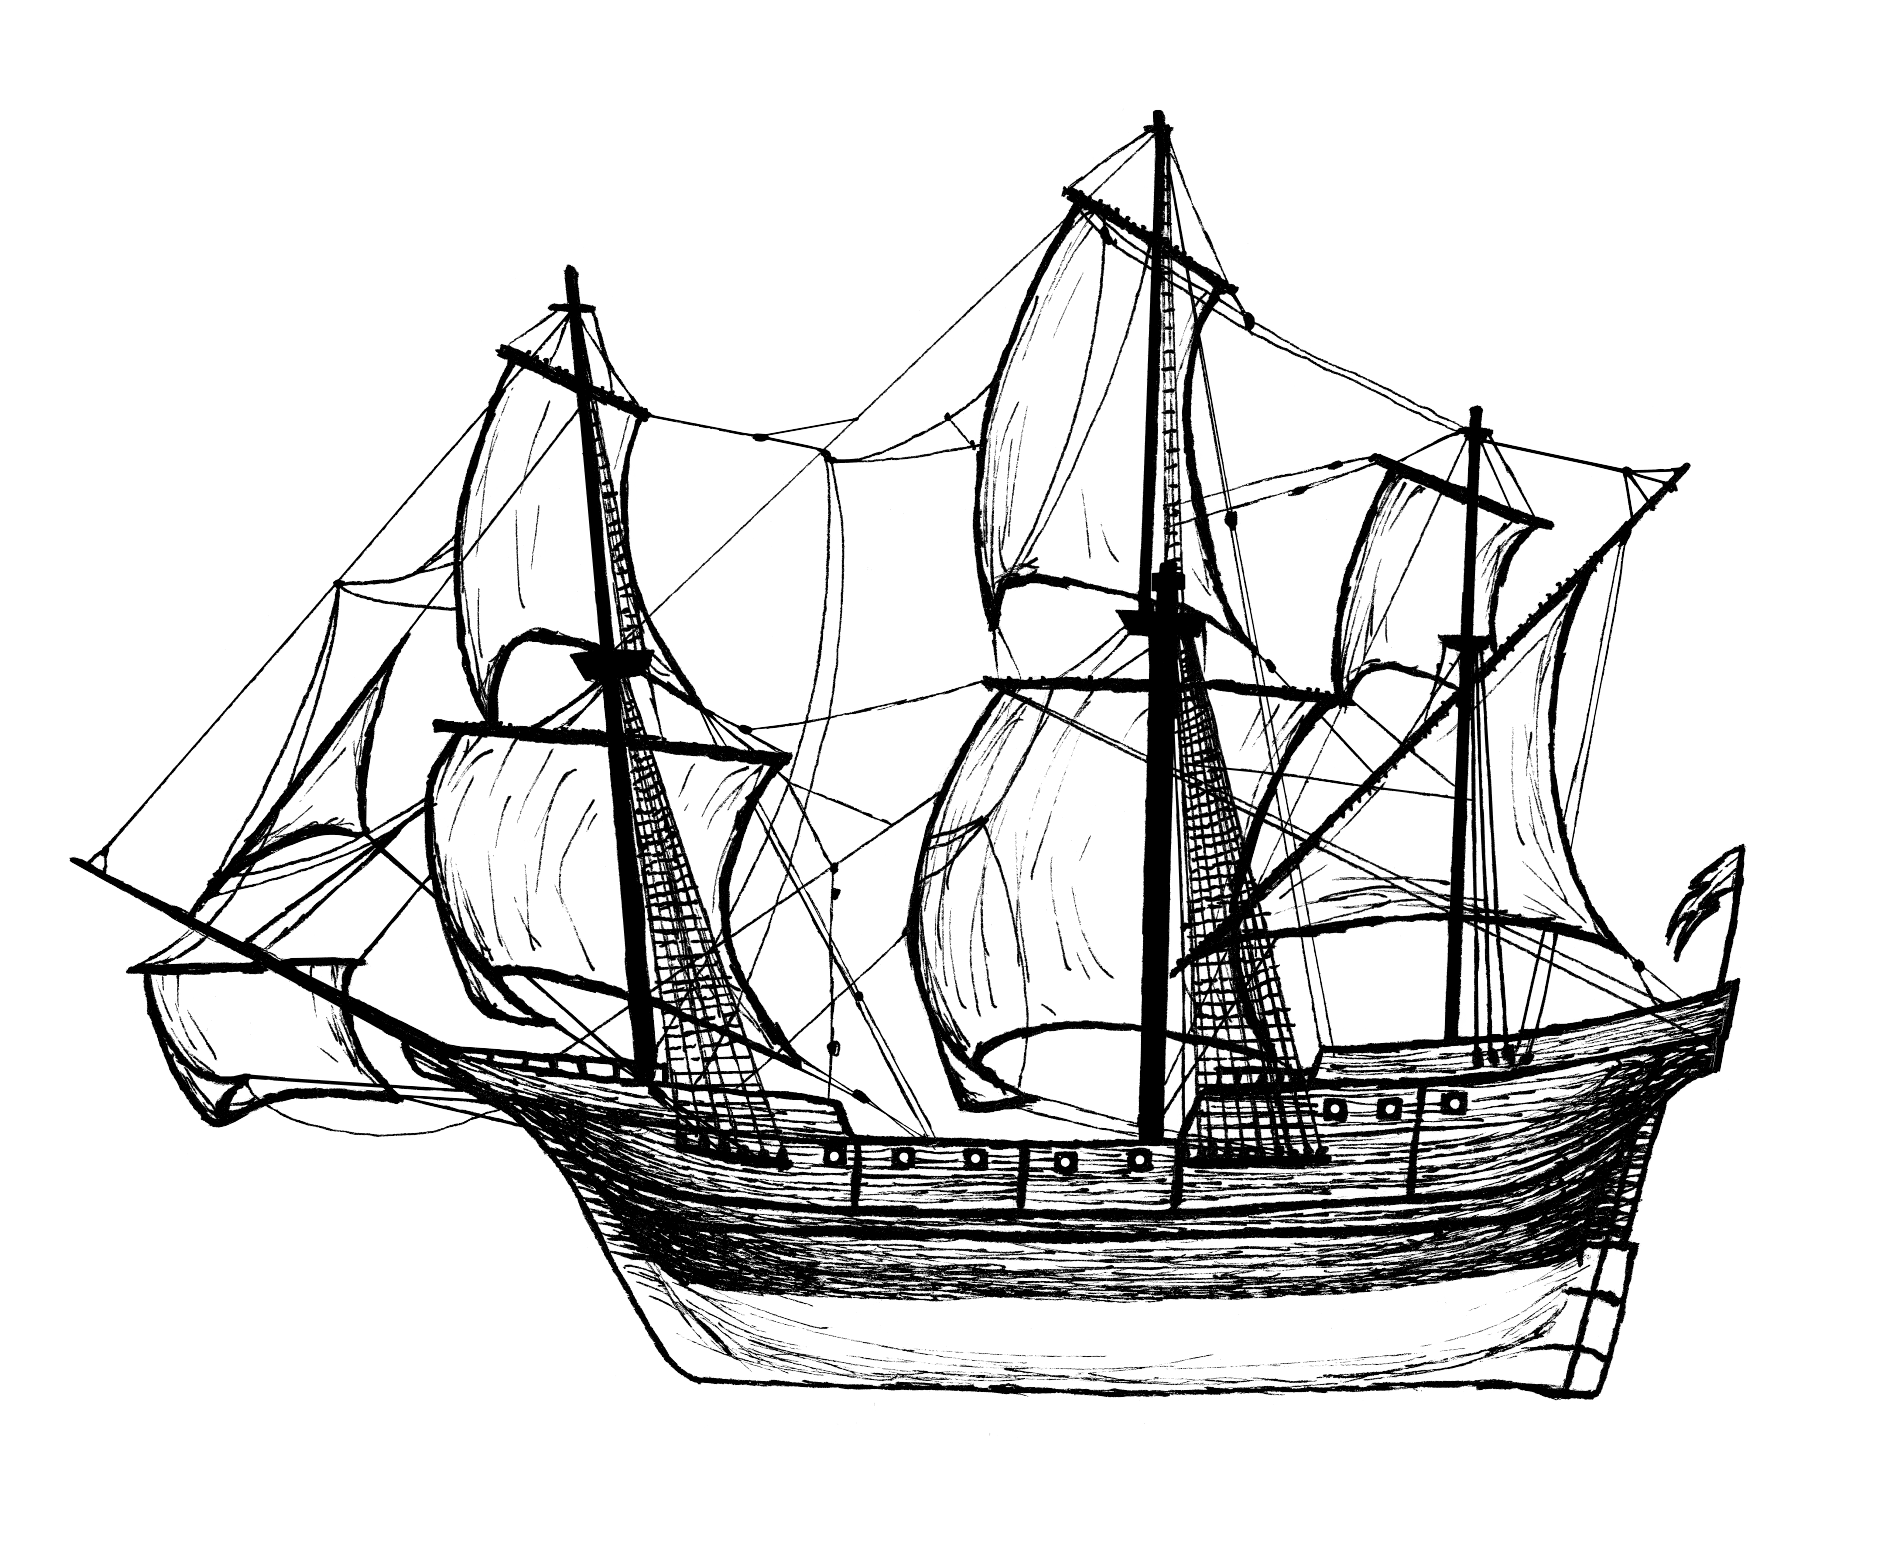 J. Gow Orkney Rum sailing ship image logo